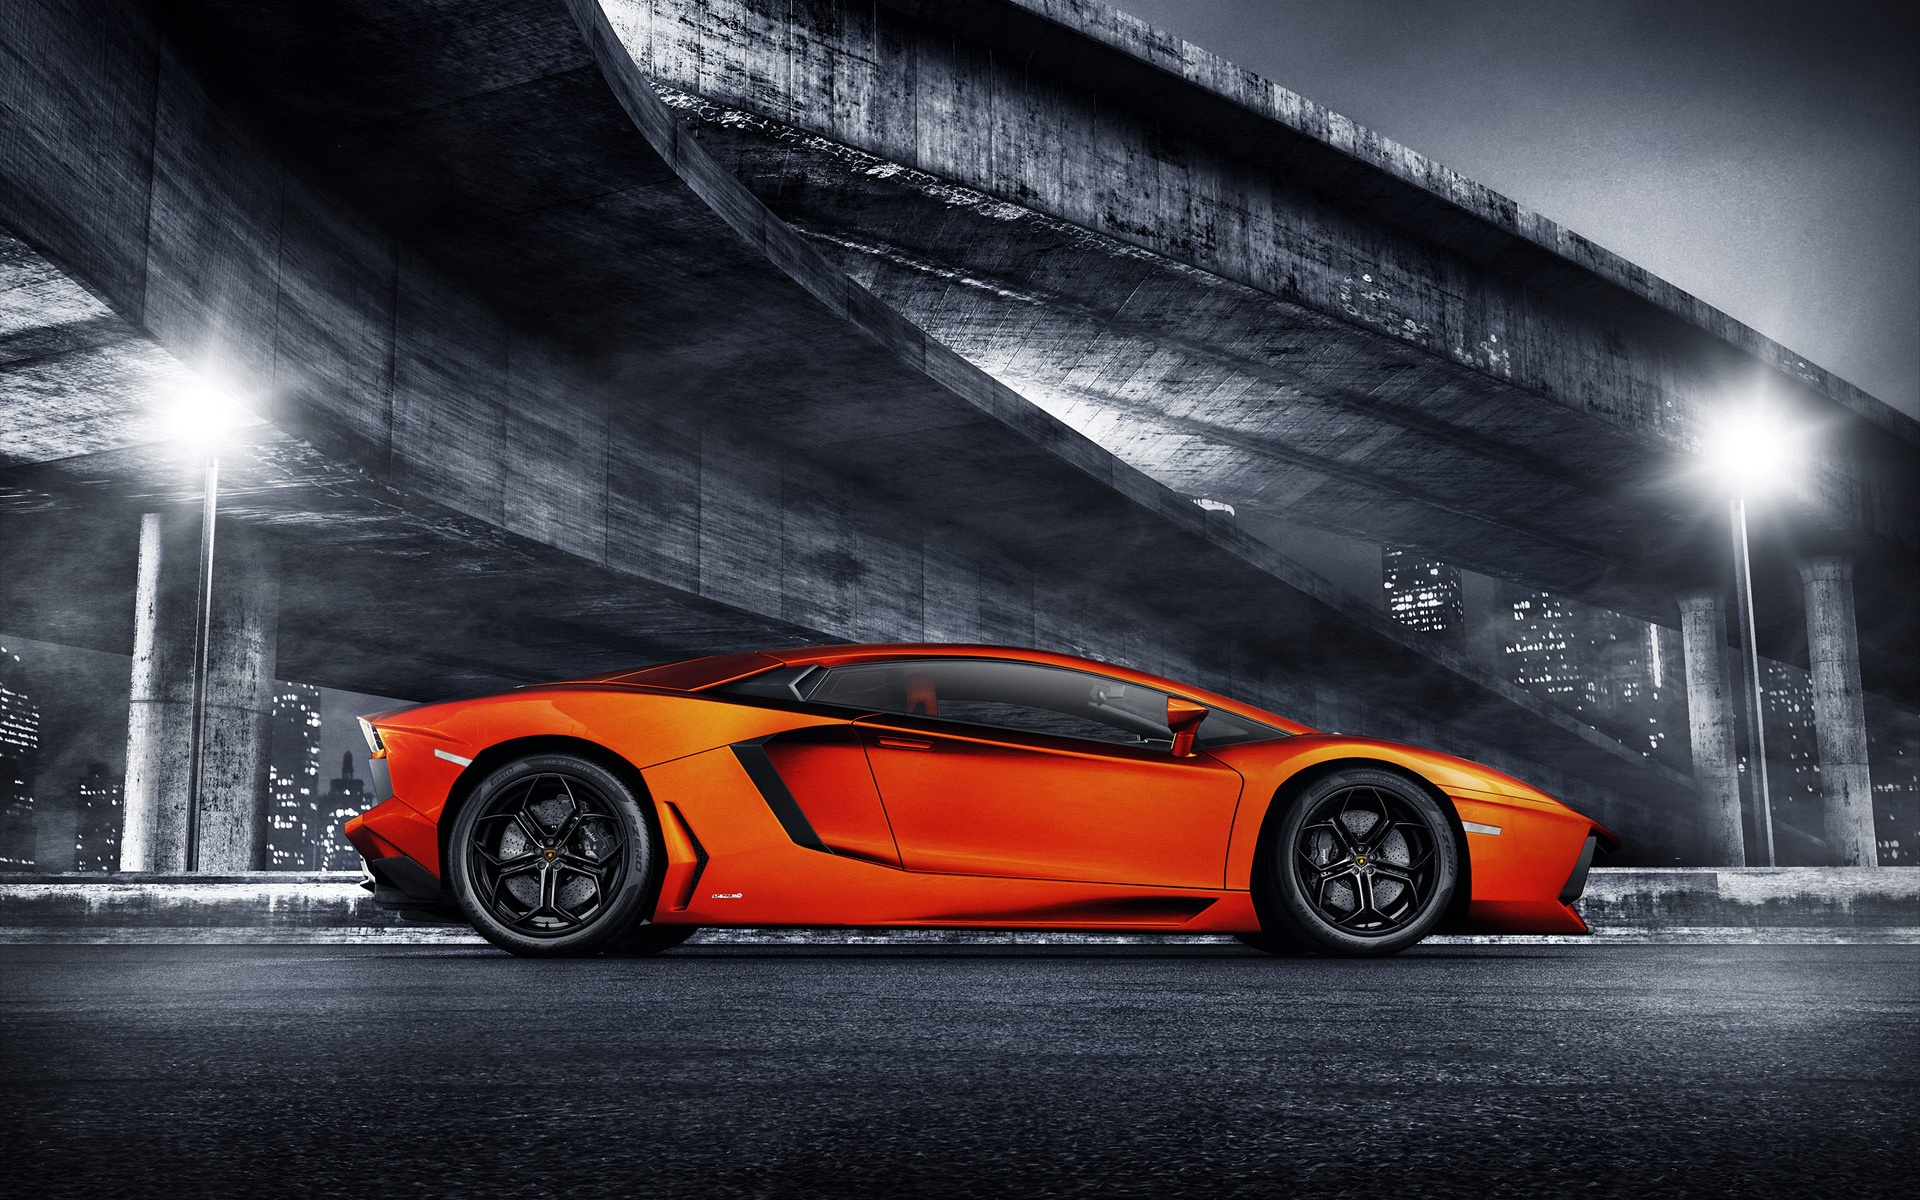 Beau Lamborghini Aventador Sports Car Wallpapers